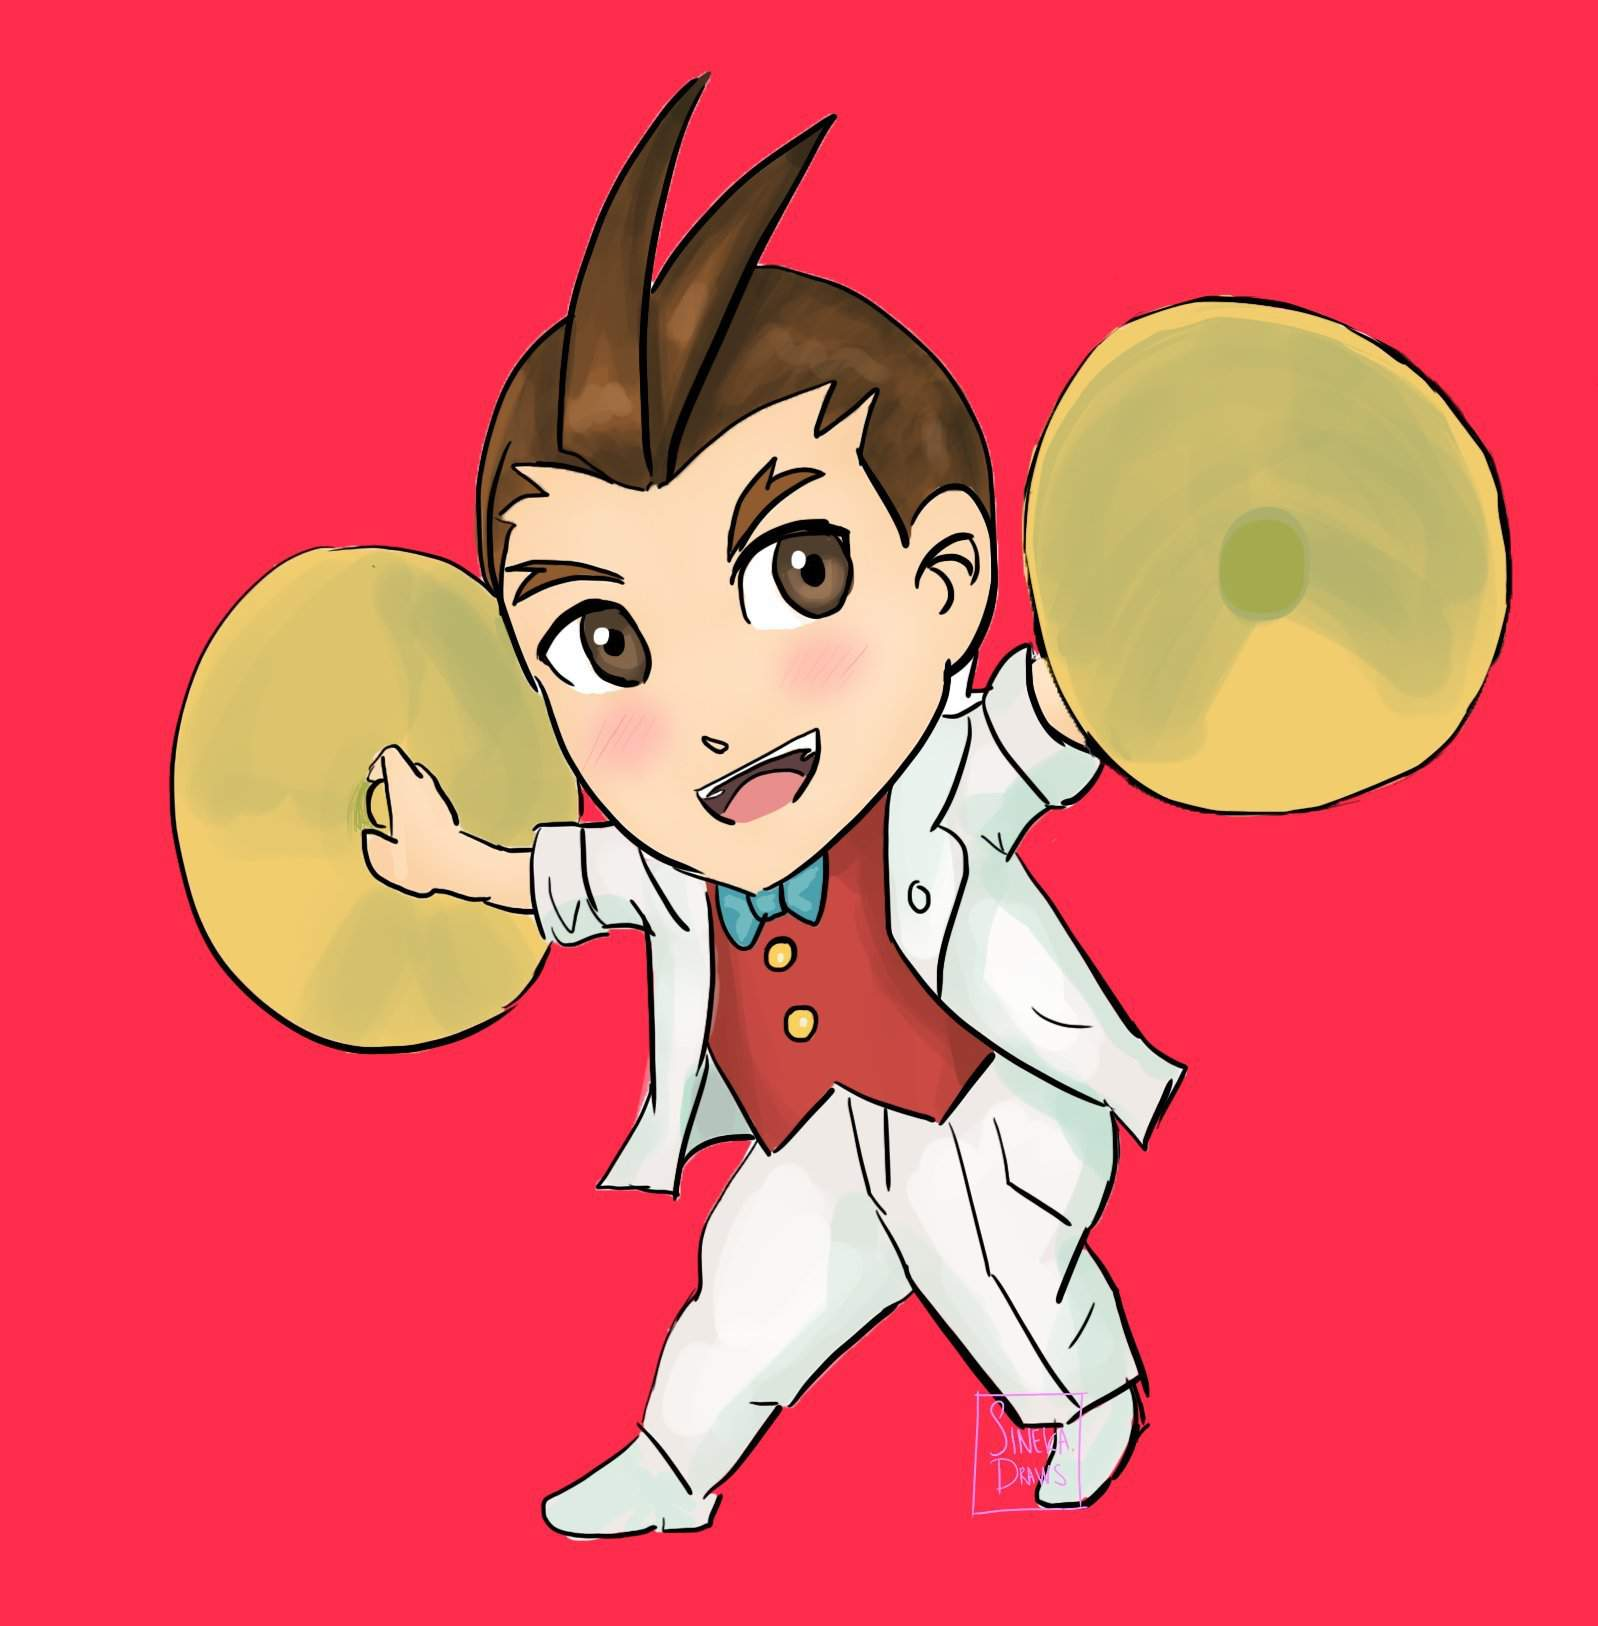 Fanart Apollo Justice Chibi Inspired By The Ace Attorney